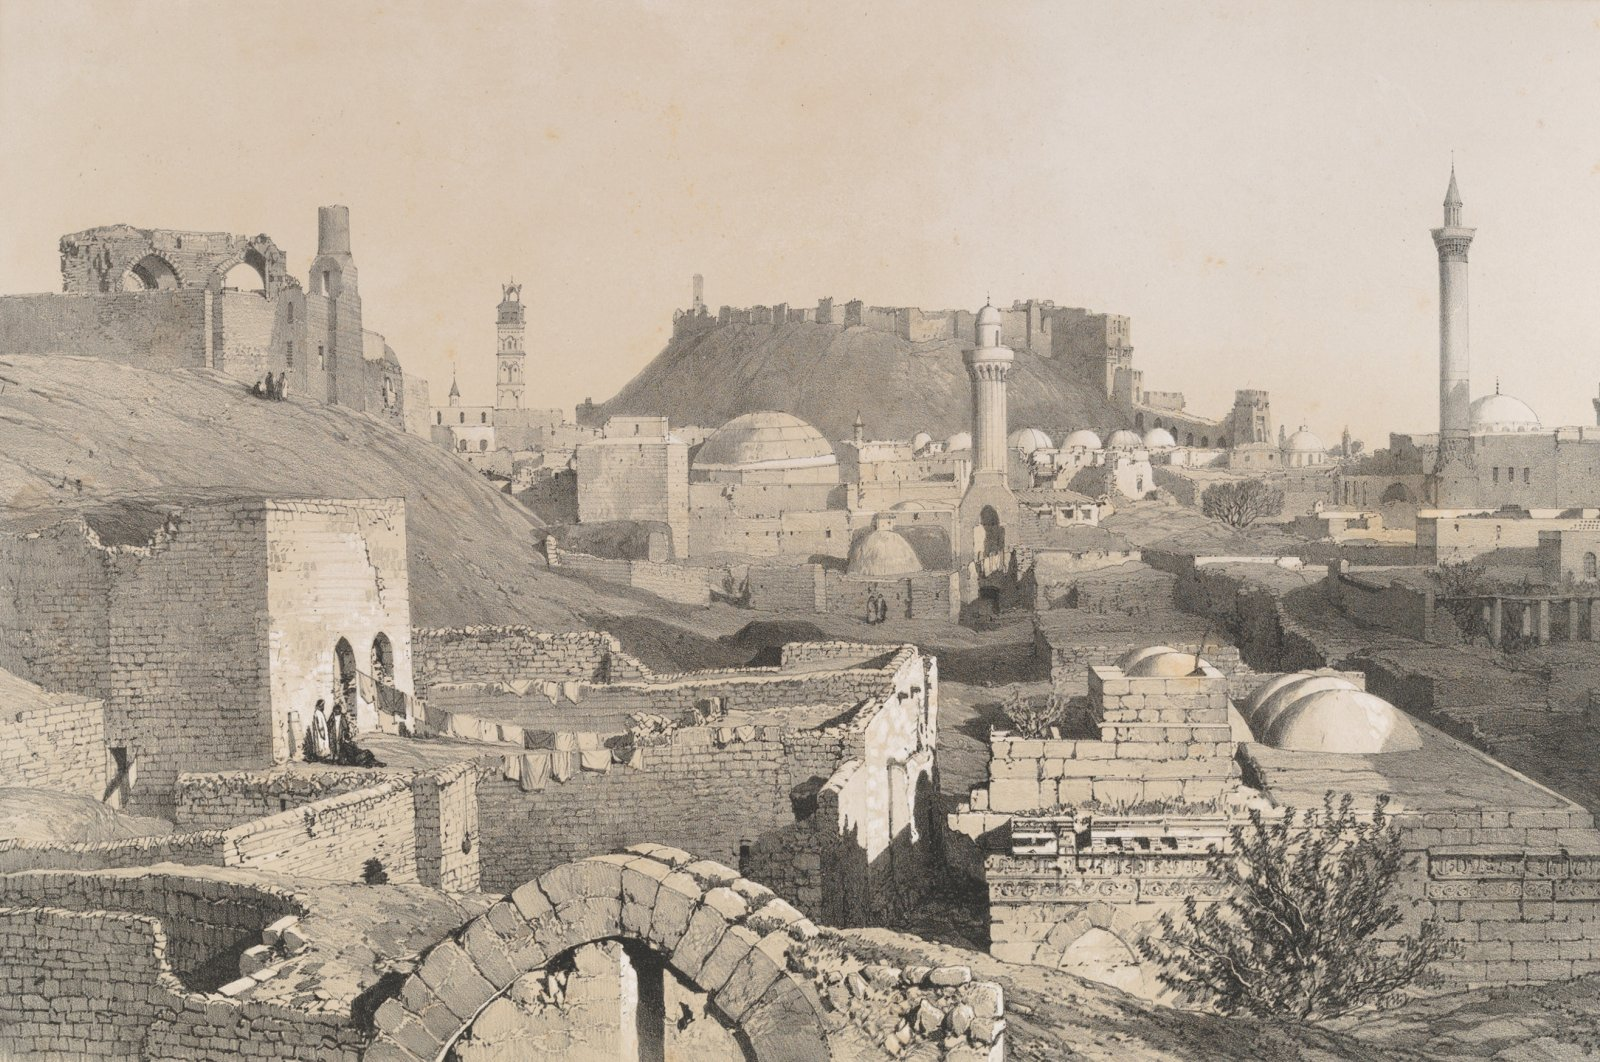 A lithograph by artist Joseph Philibert Girault De Prangey shows Aleppo in 1843. (Getty Images)